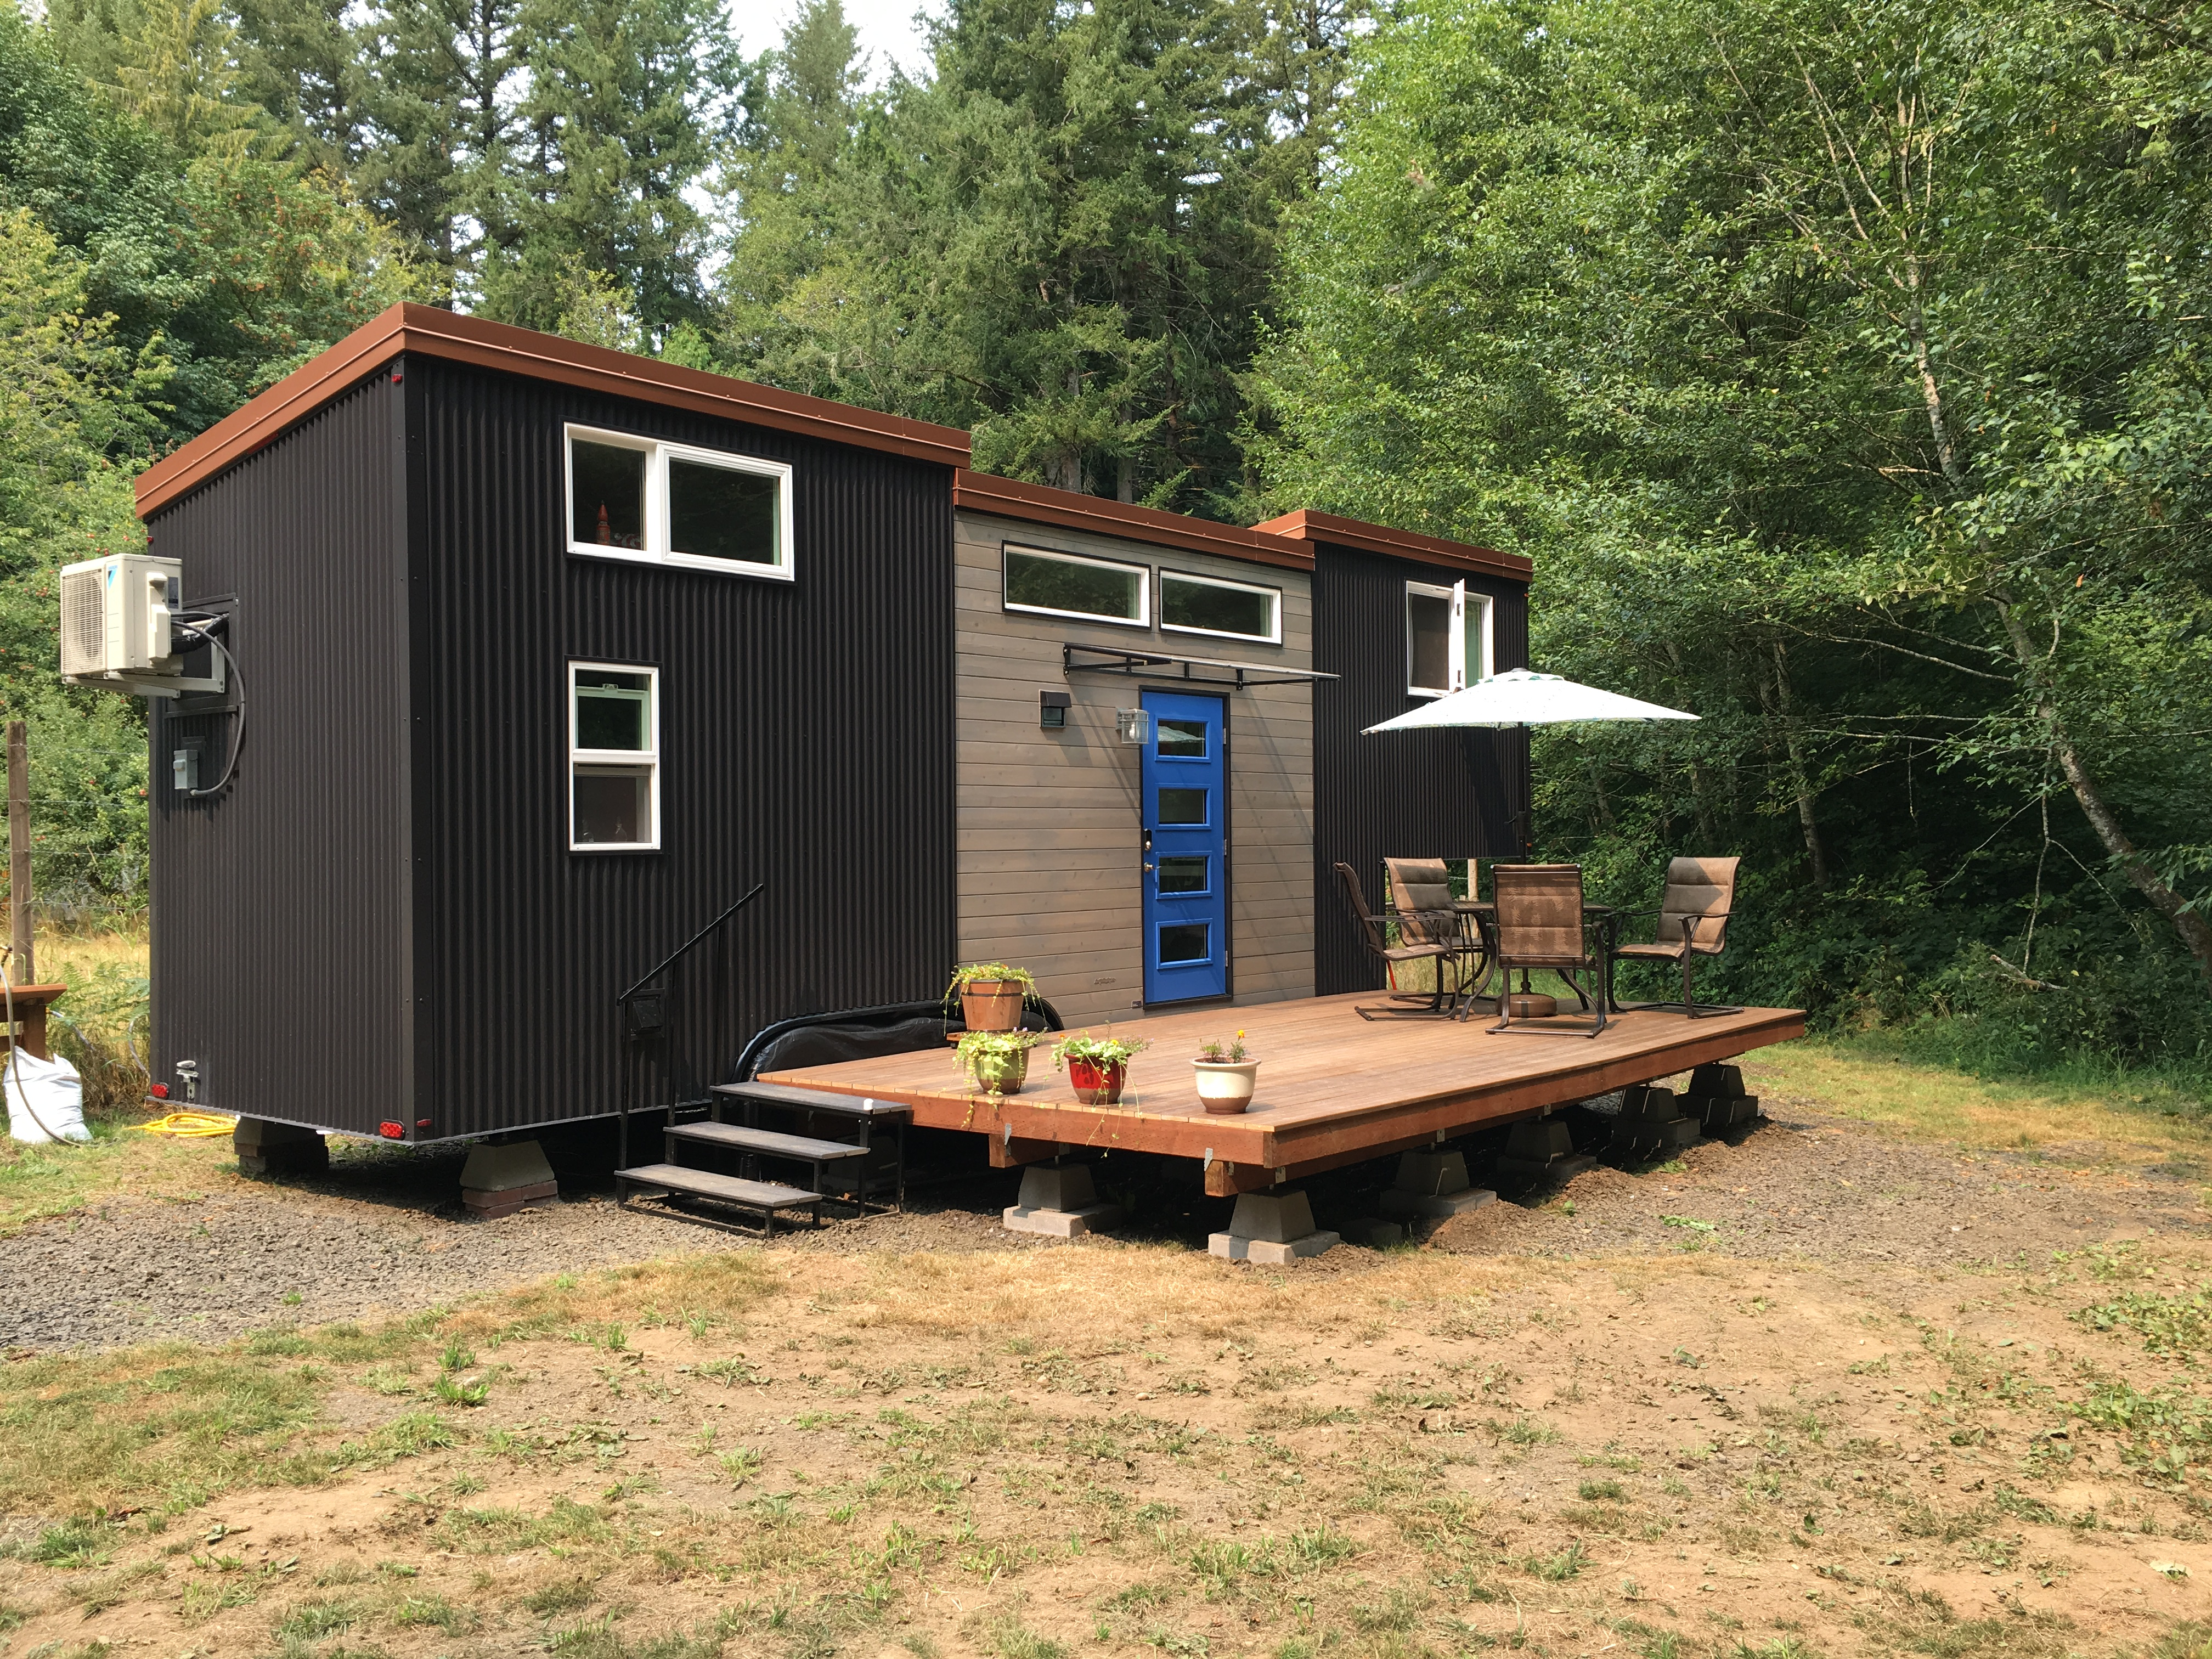 Parking Options for Your Tiny Home - Seattle Tiny Homes